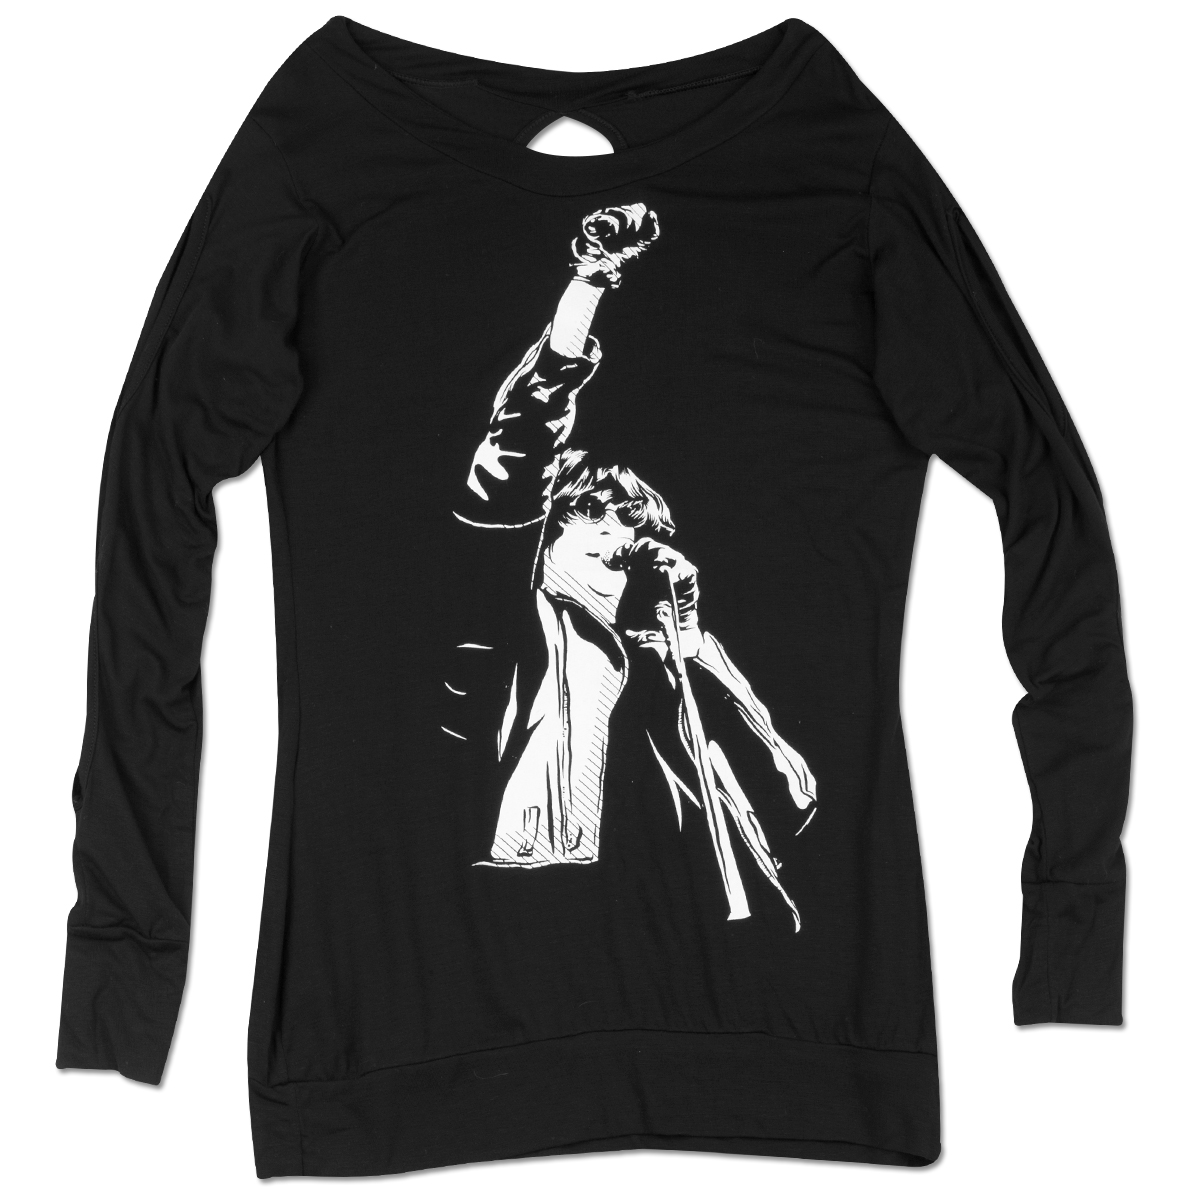 Ladies Black JR Fist L/S Shirt